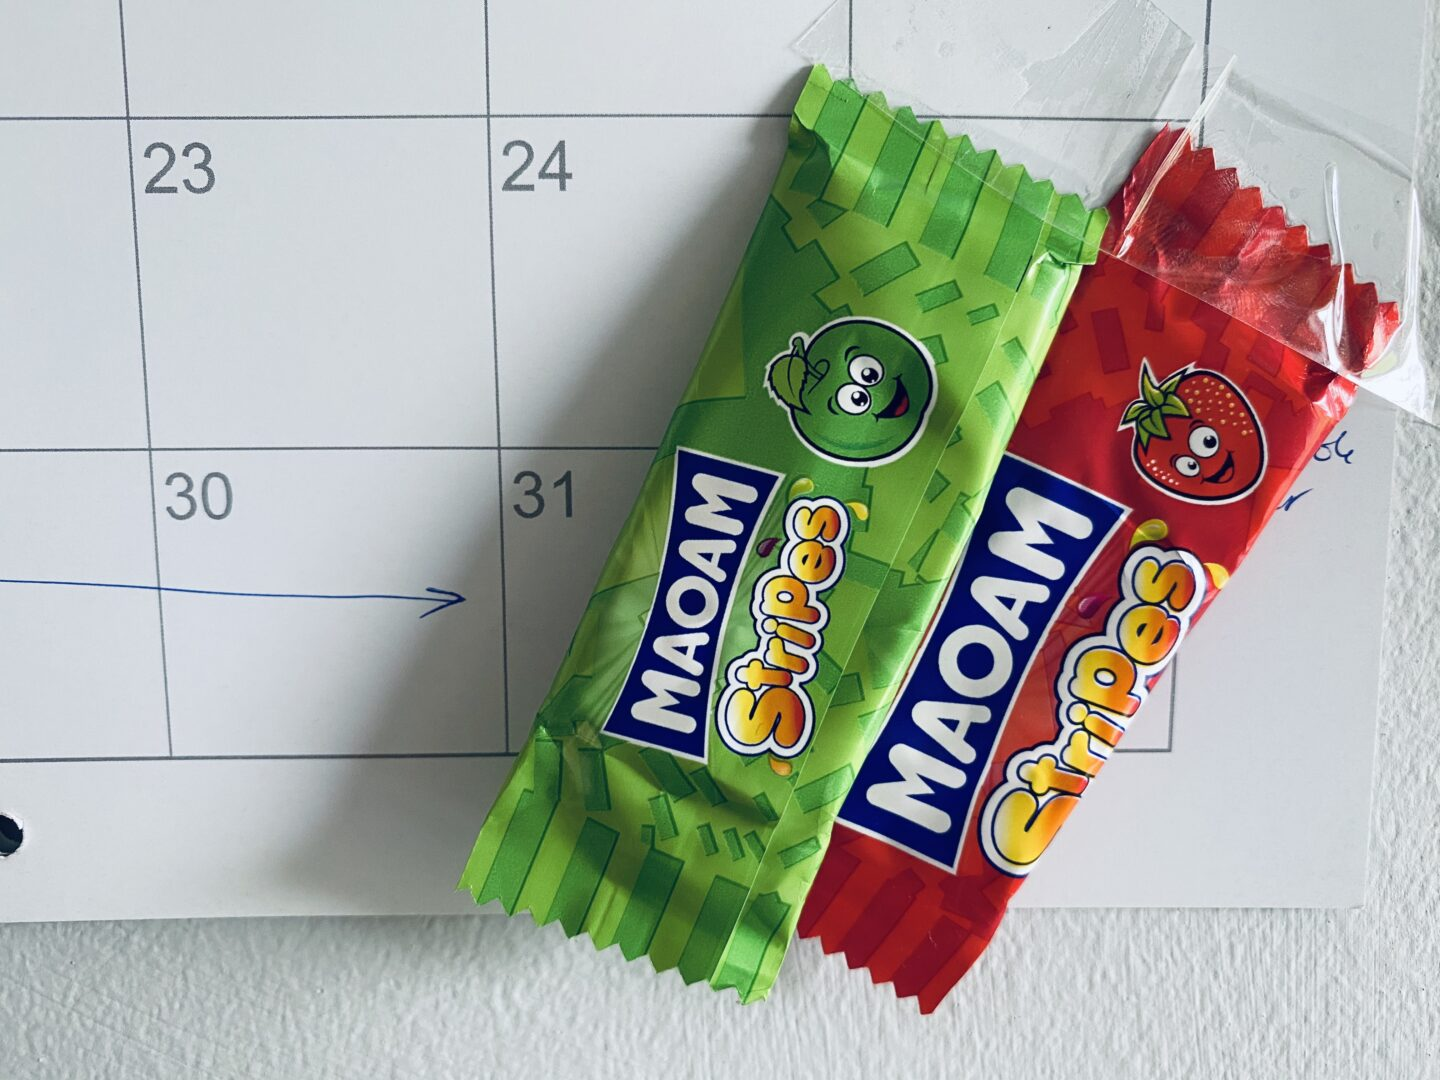 Some Maoam stuck to a calendar